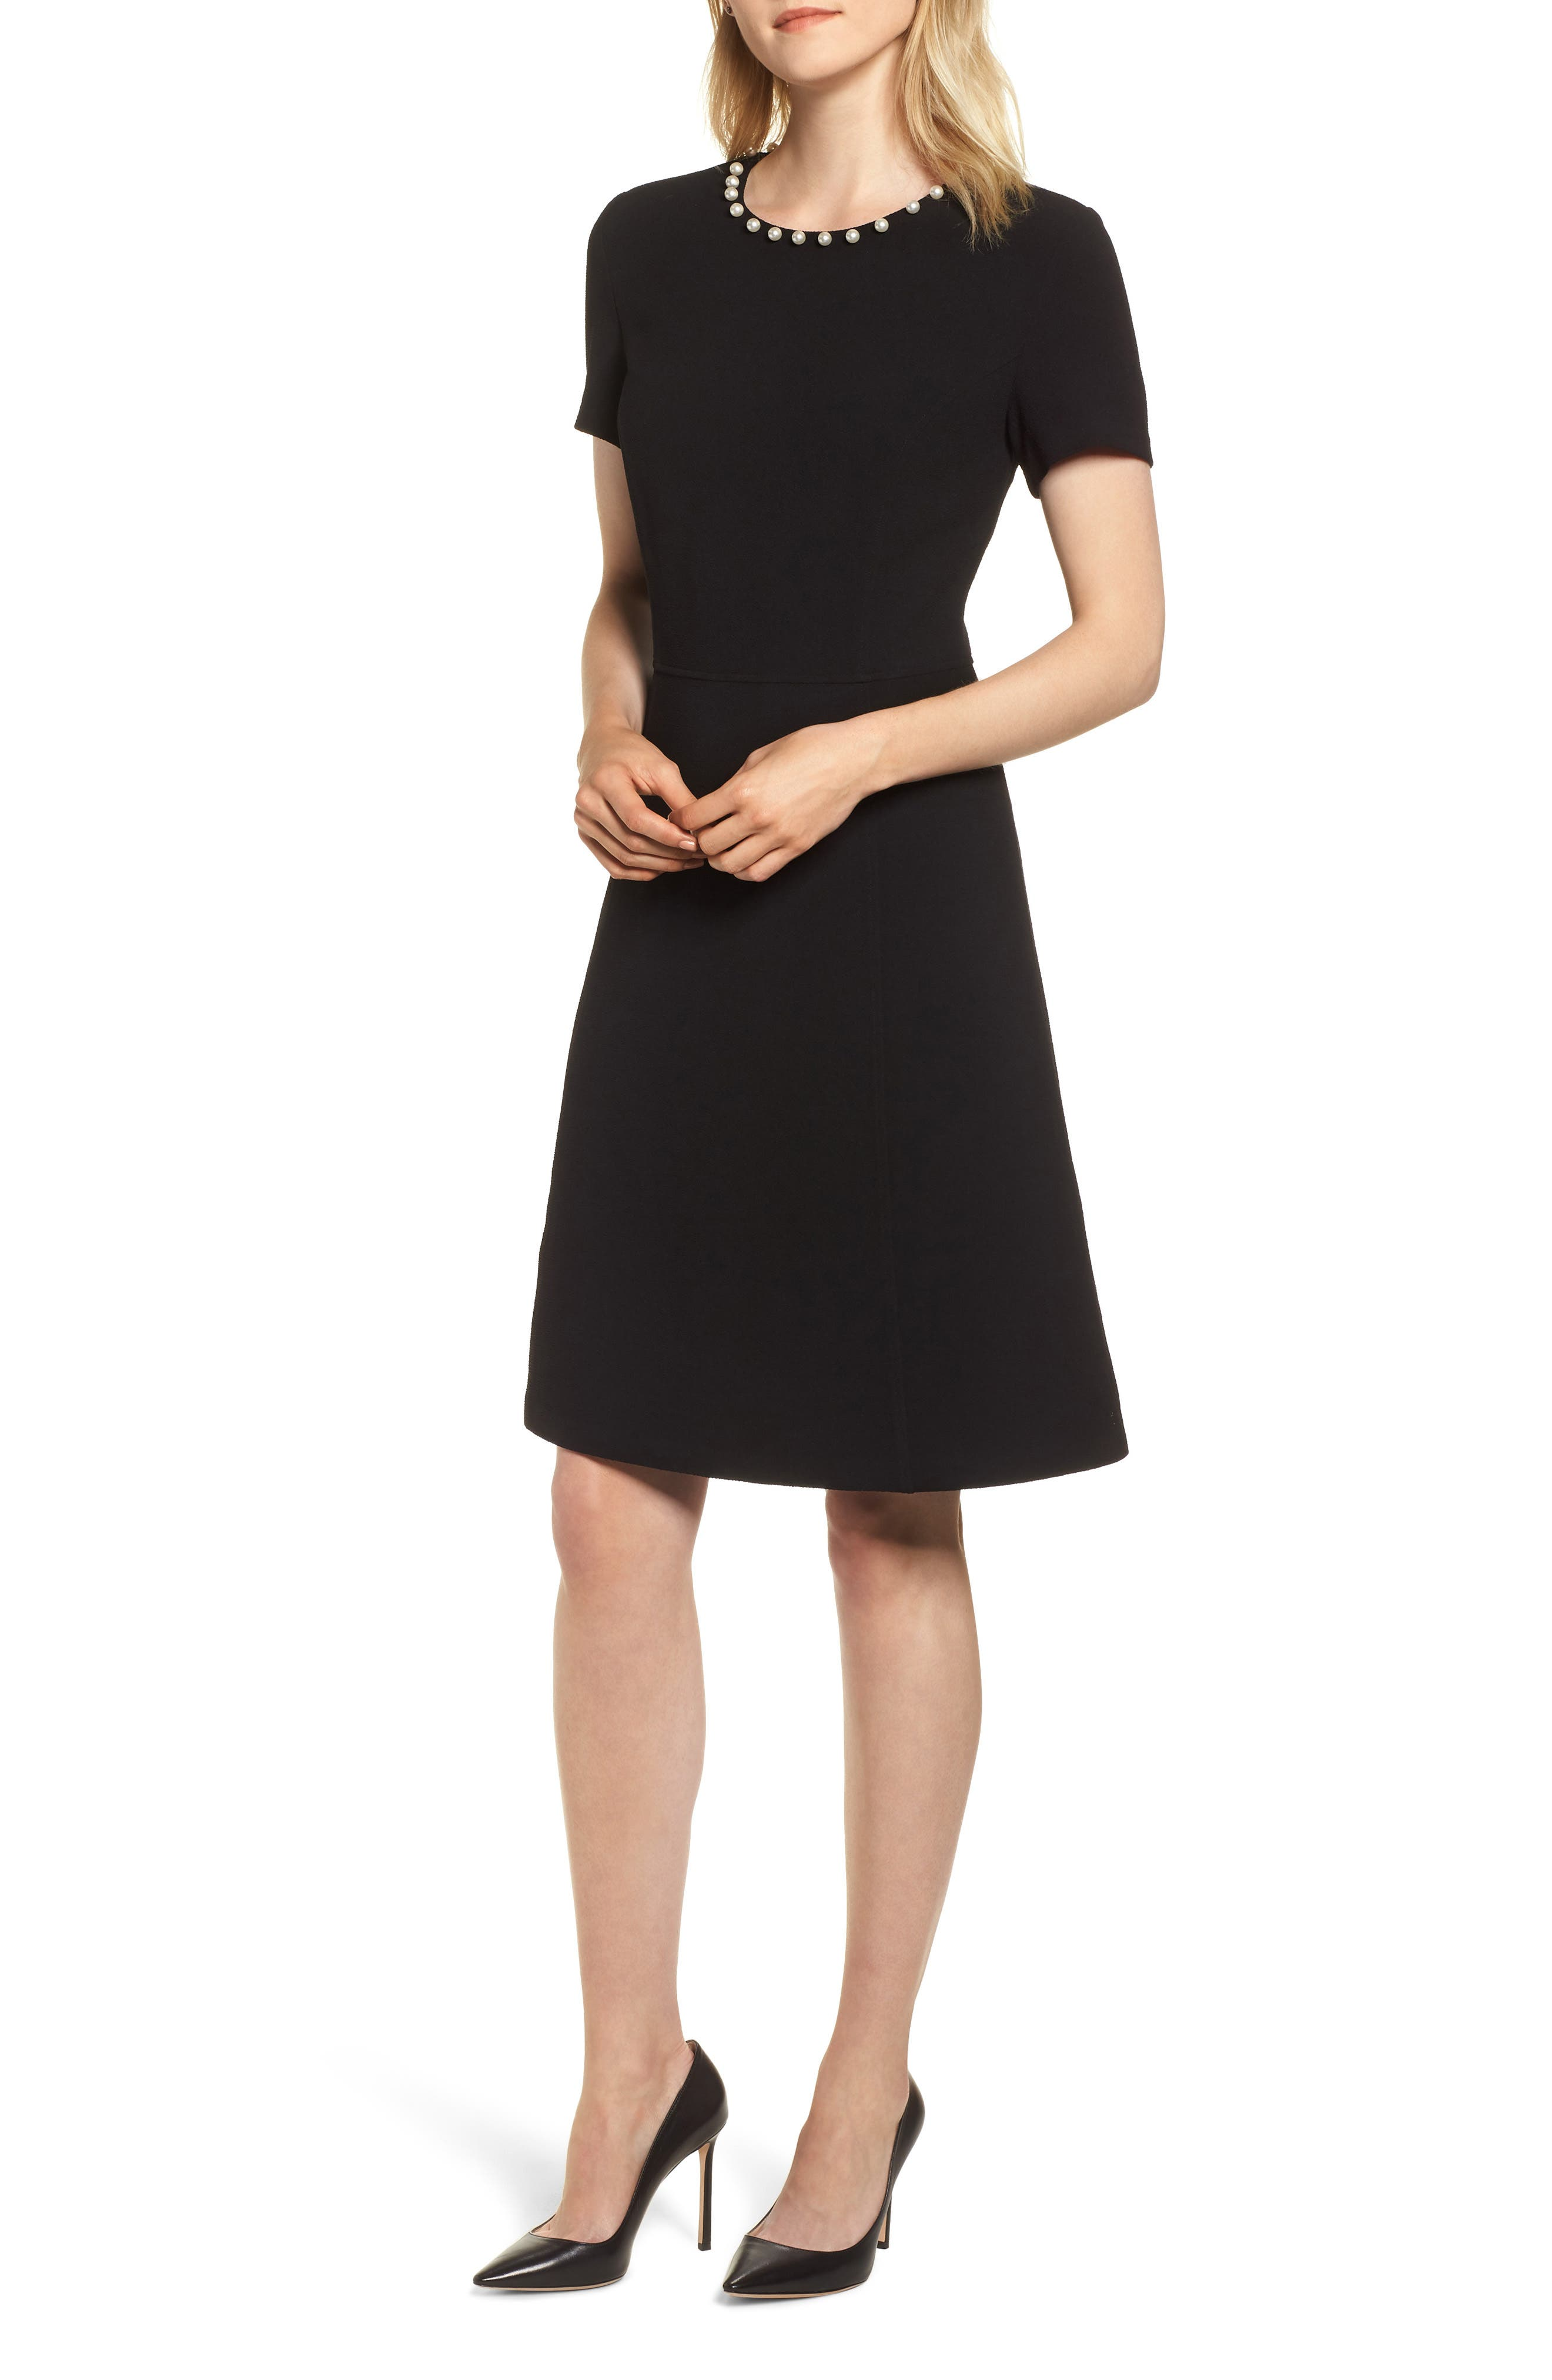 KARL LAGERFELD PARIS Pearly Necklace Fit & Flare Dress, Main, color, 001